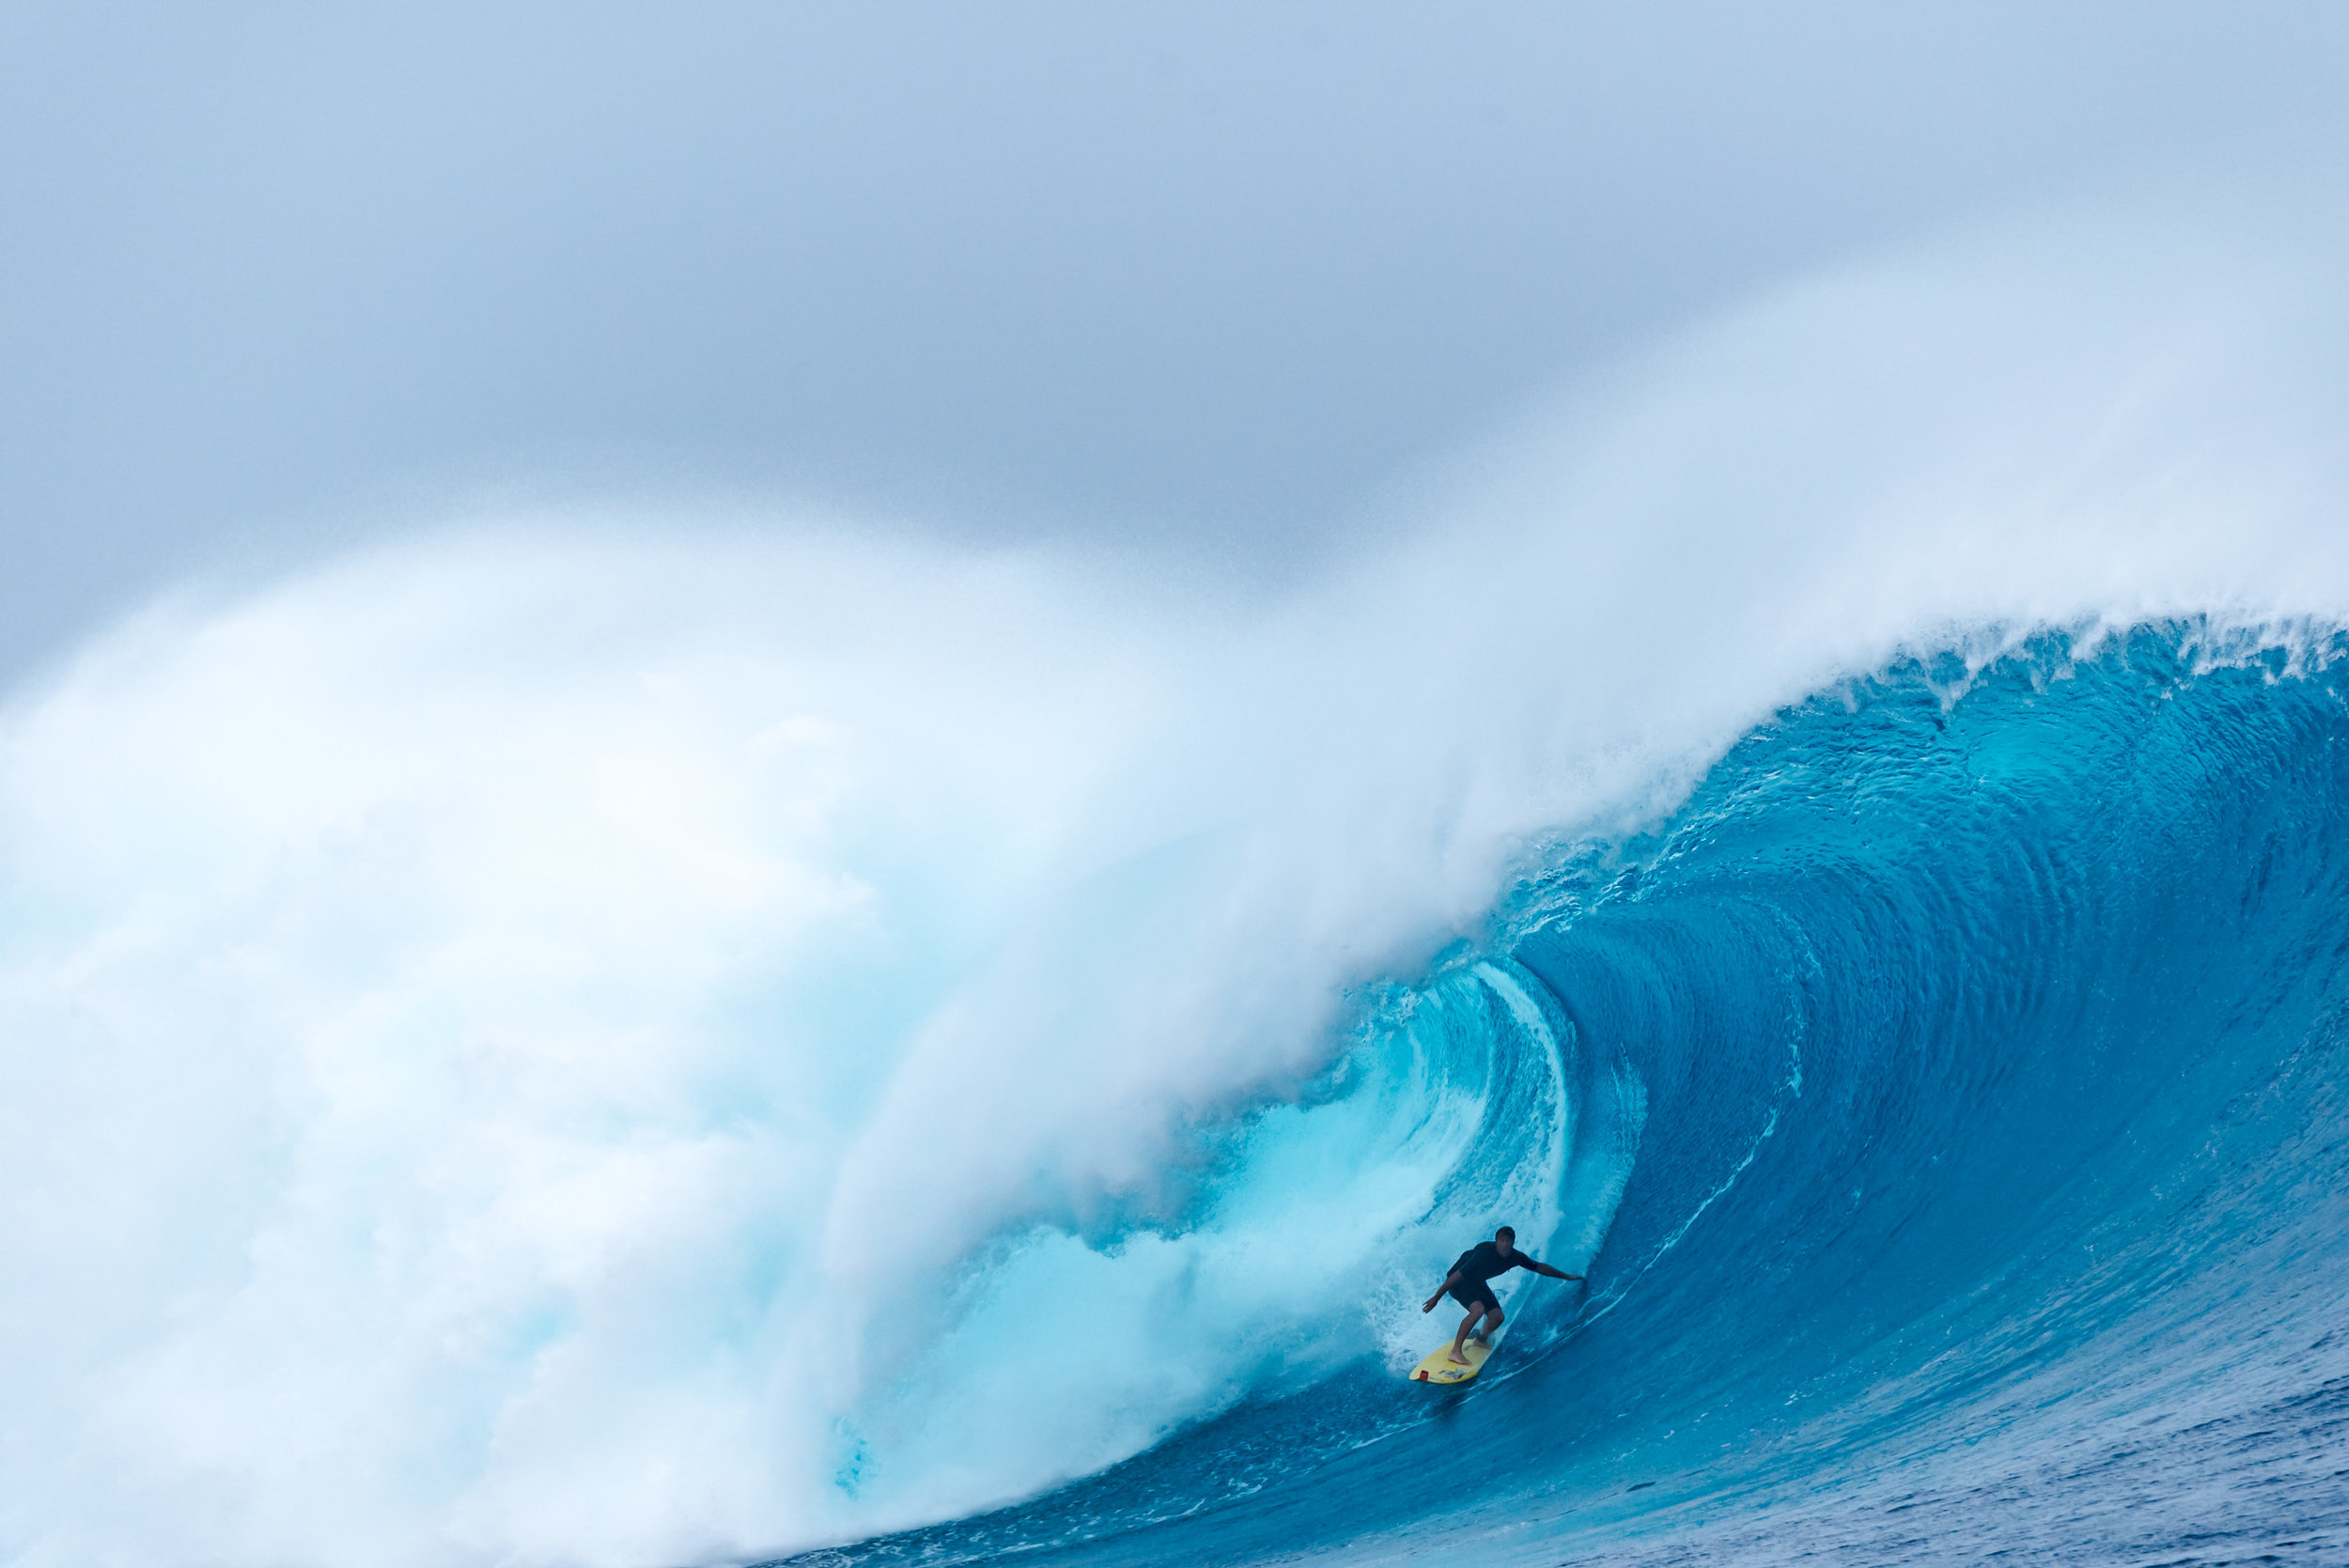 Sequence - How to take amazing surfing photos every time-11.jpg